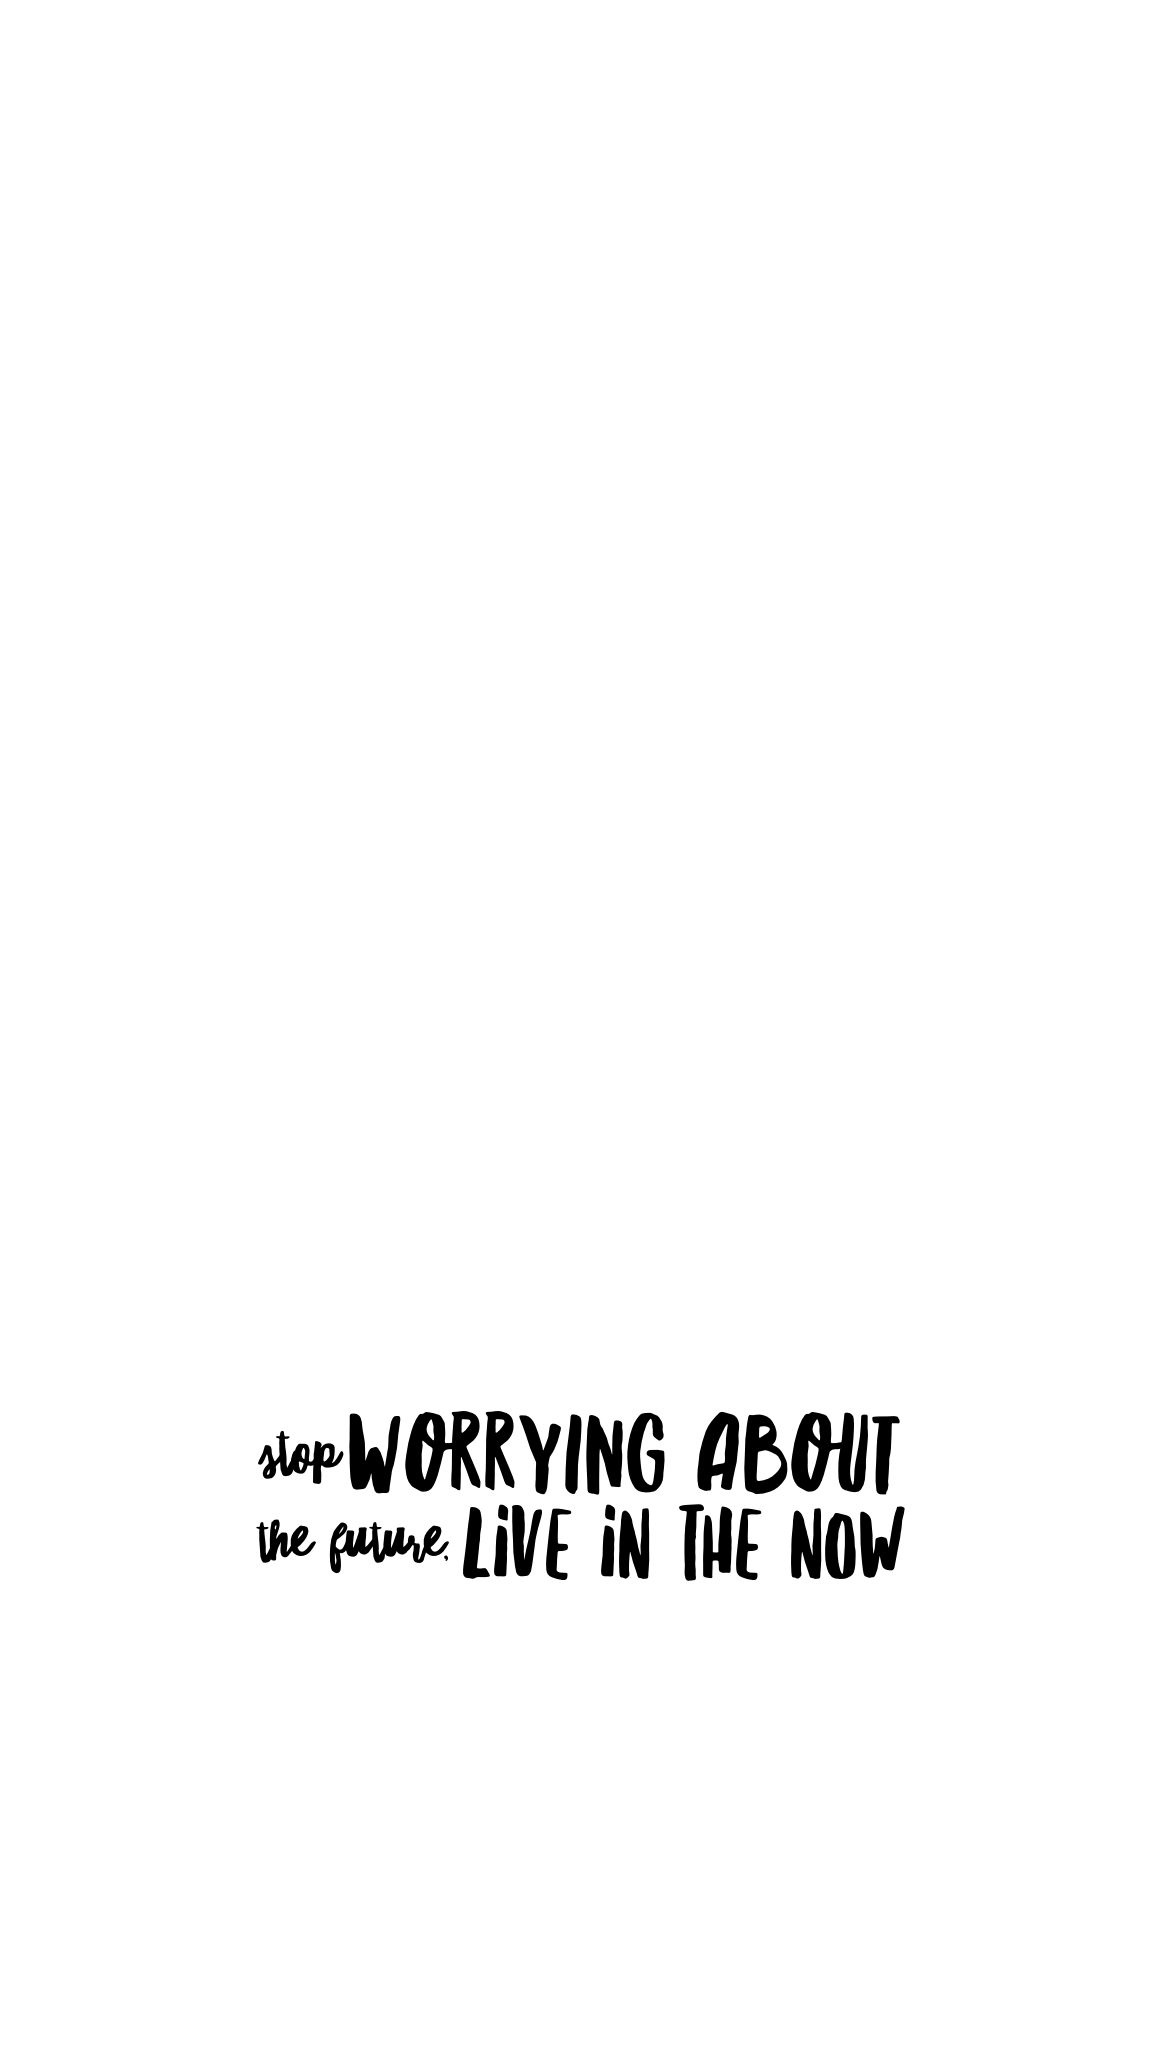 Minimalist Quotes Wallpapers - Top Free Minimalist Quotes